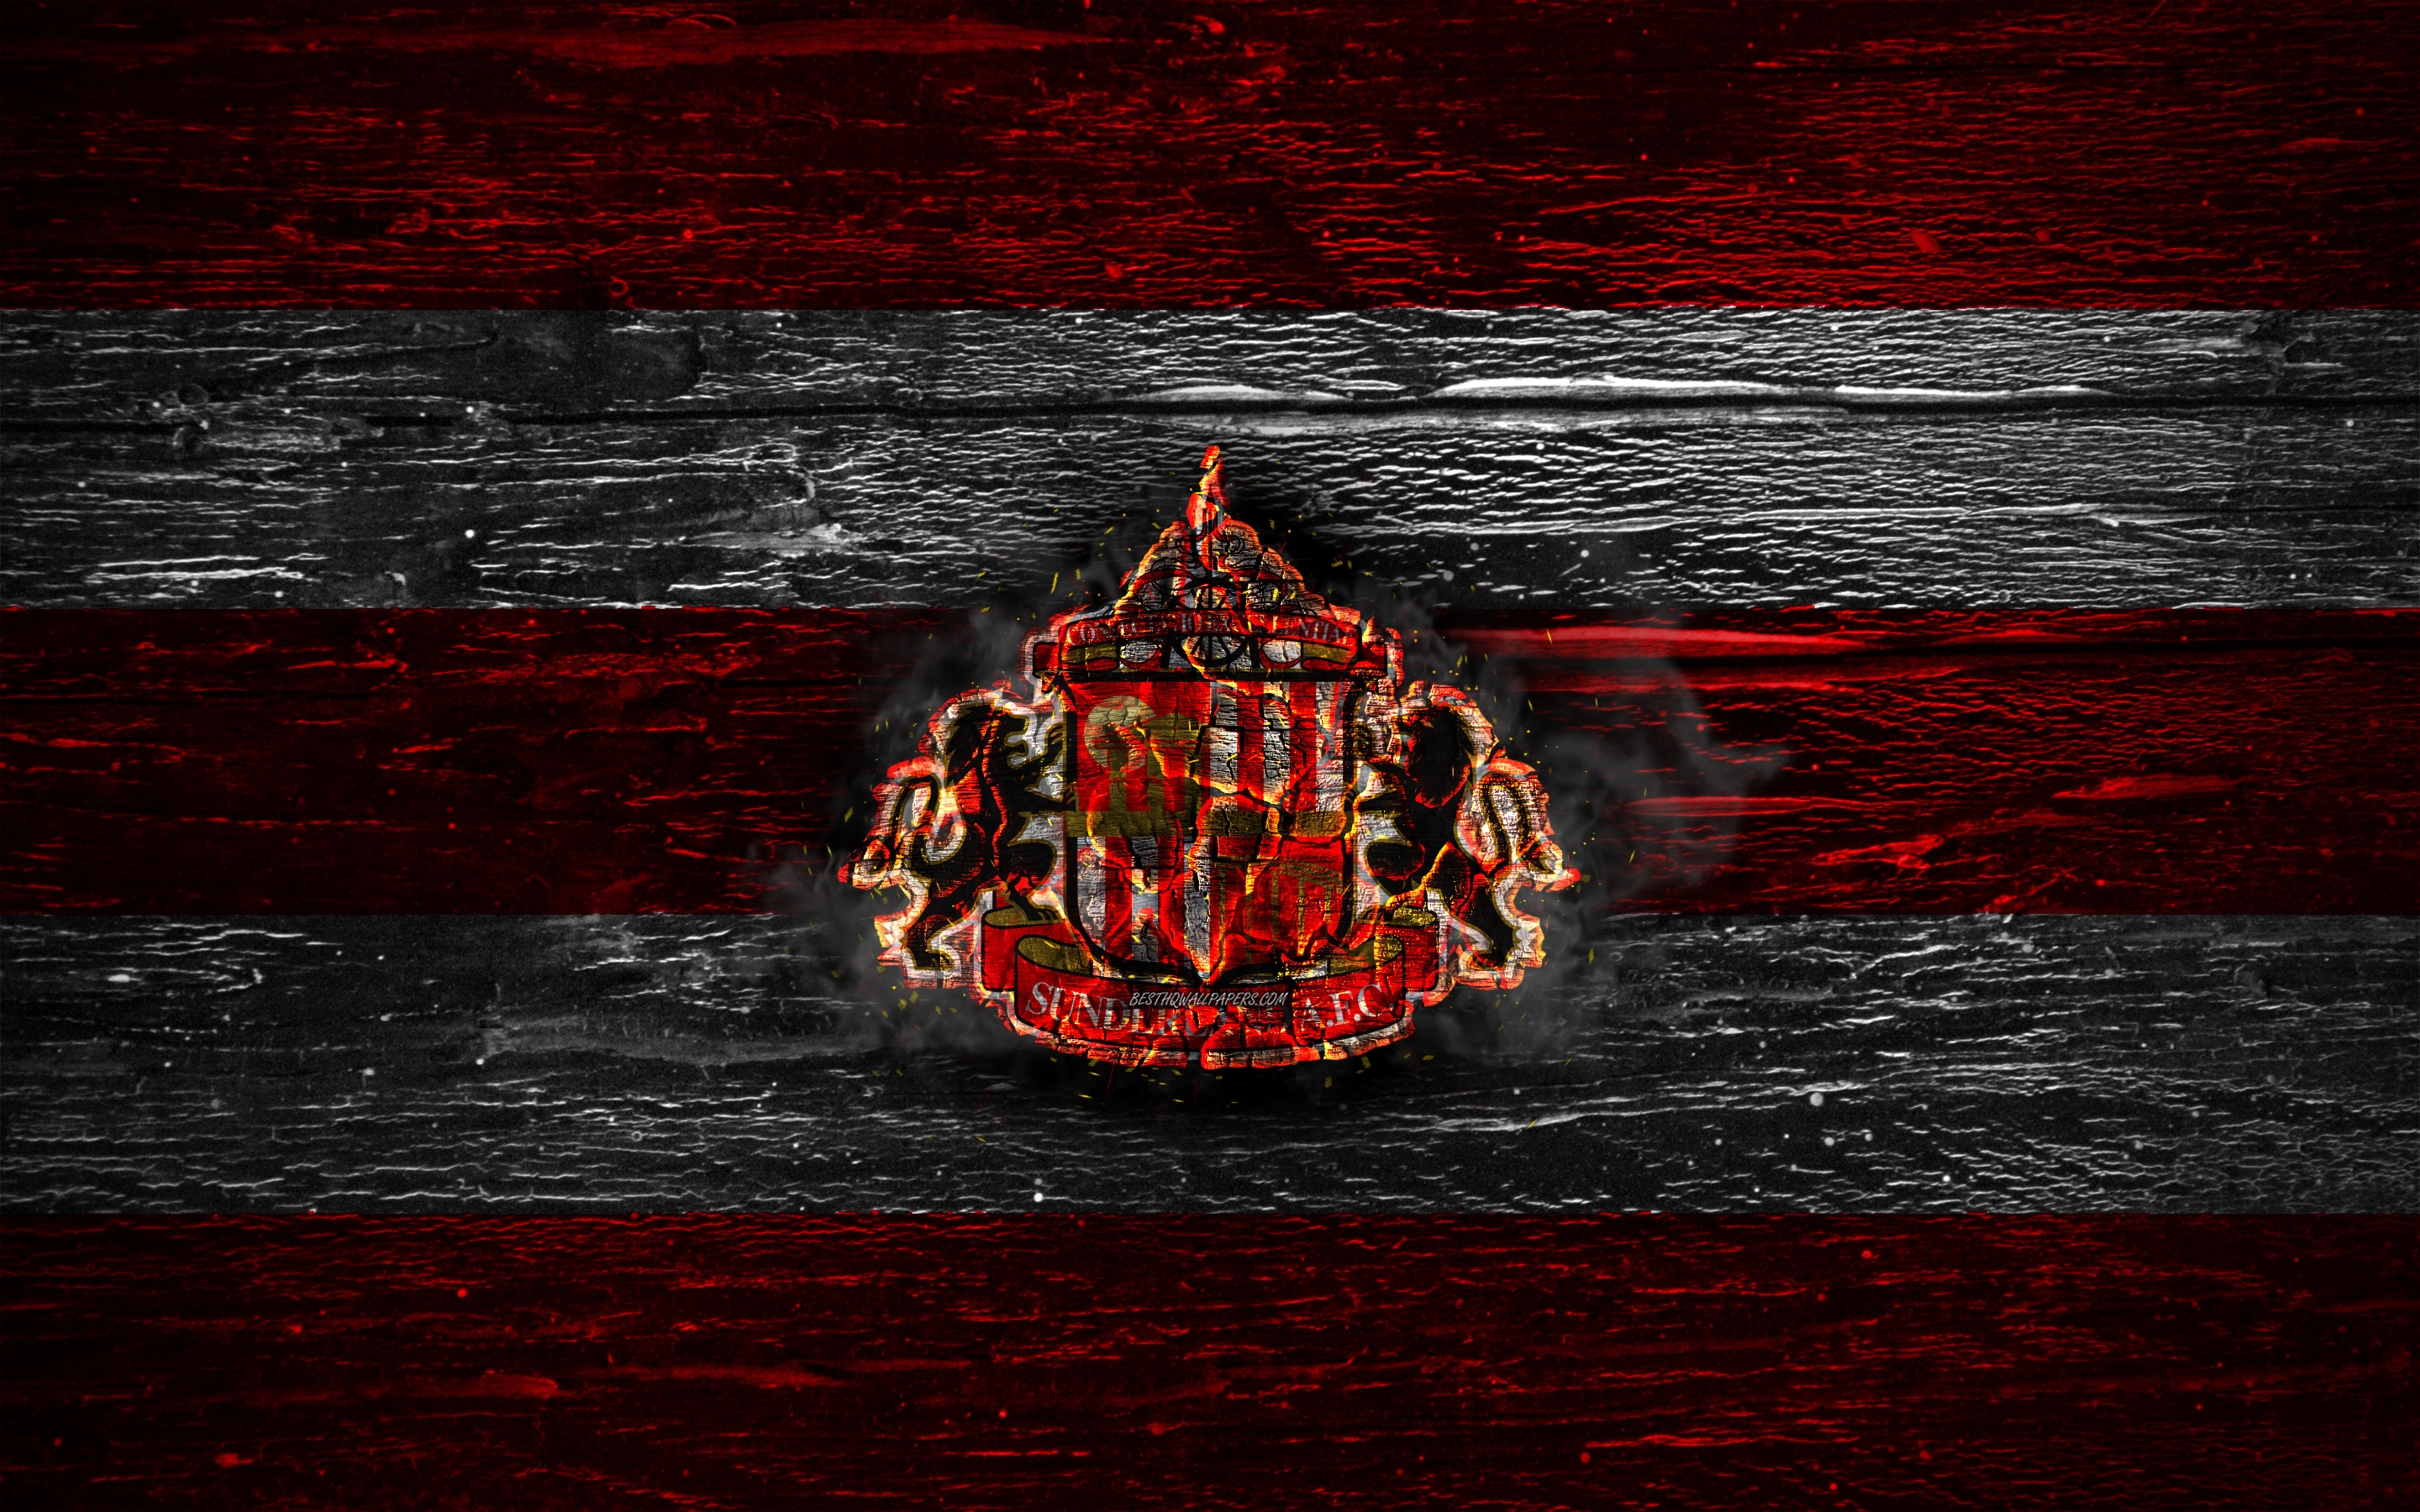 Download wallpapers Sunderland FC fire logo Championship red 2880x1800